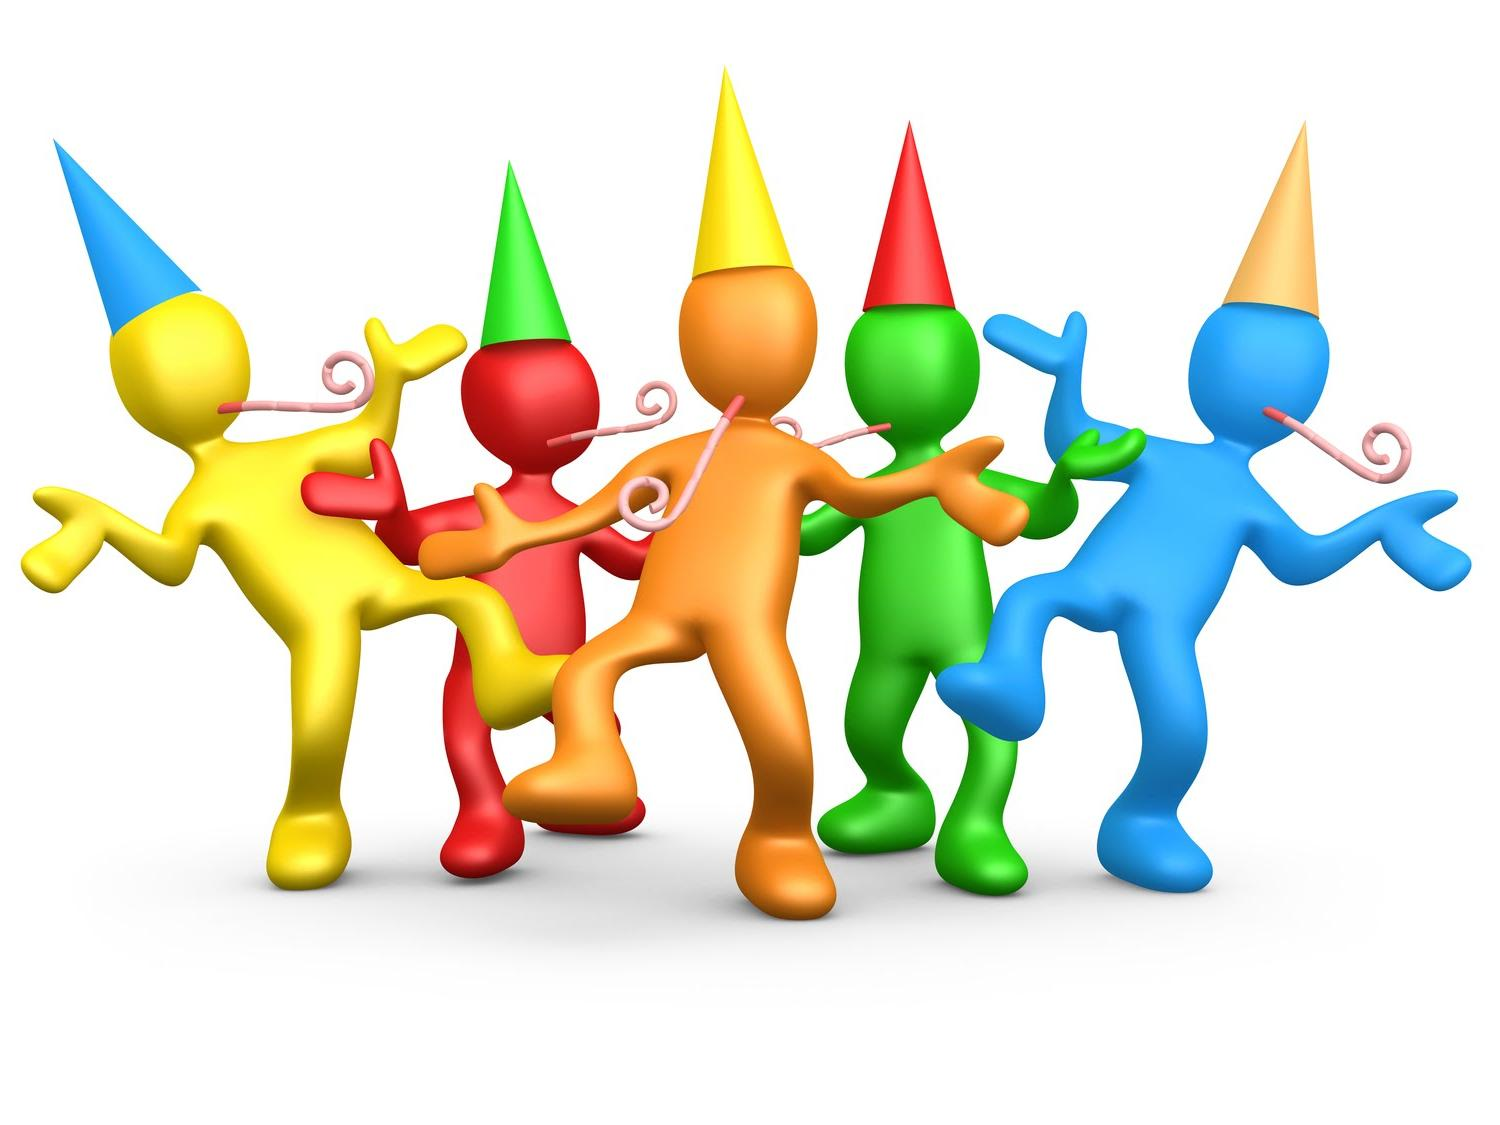 Hd celebration clipart class party clip art free images photos